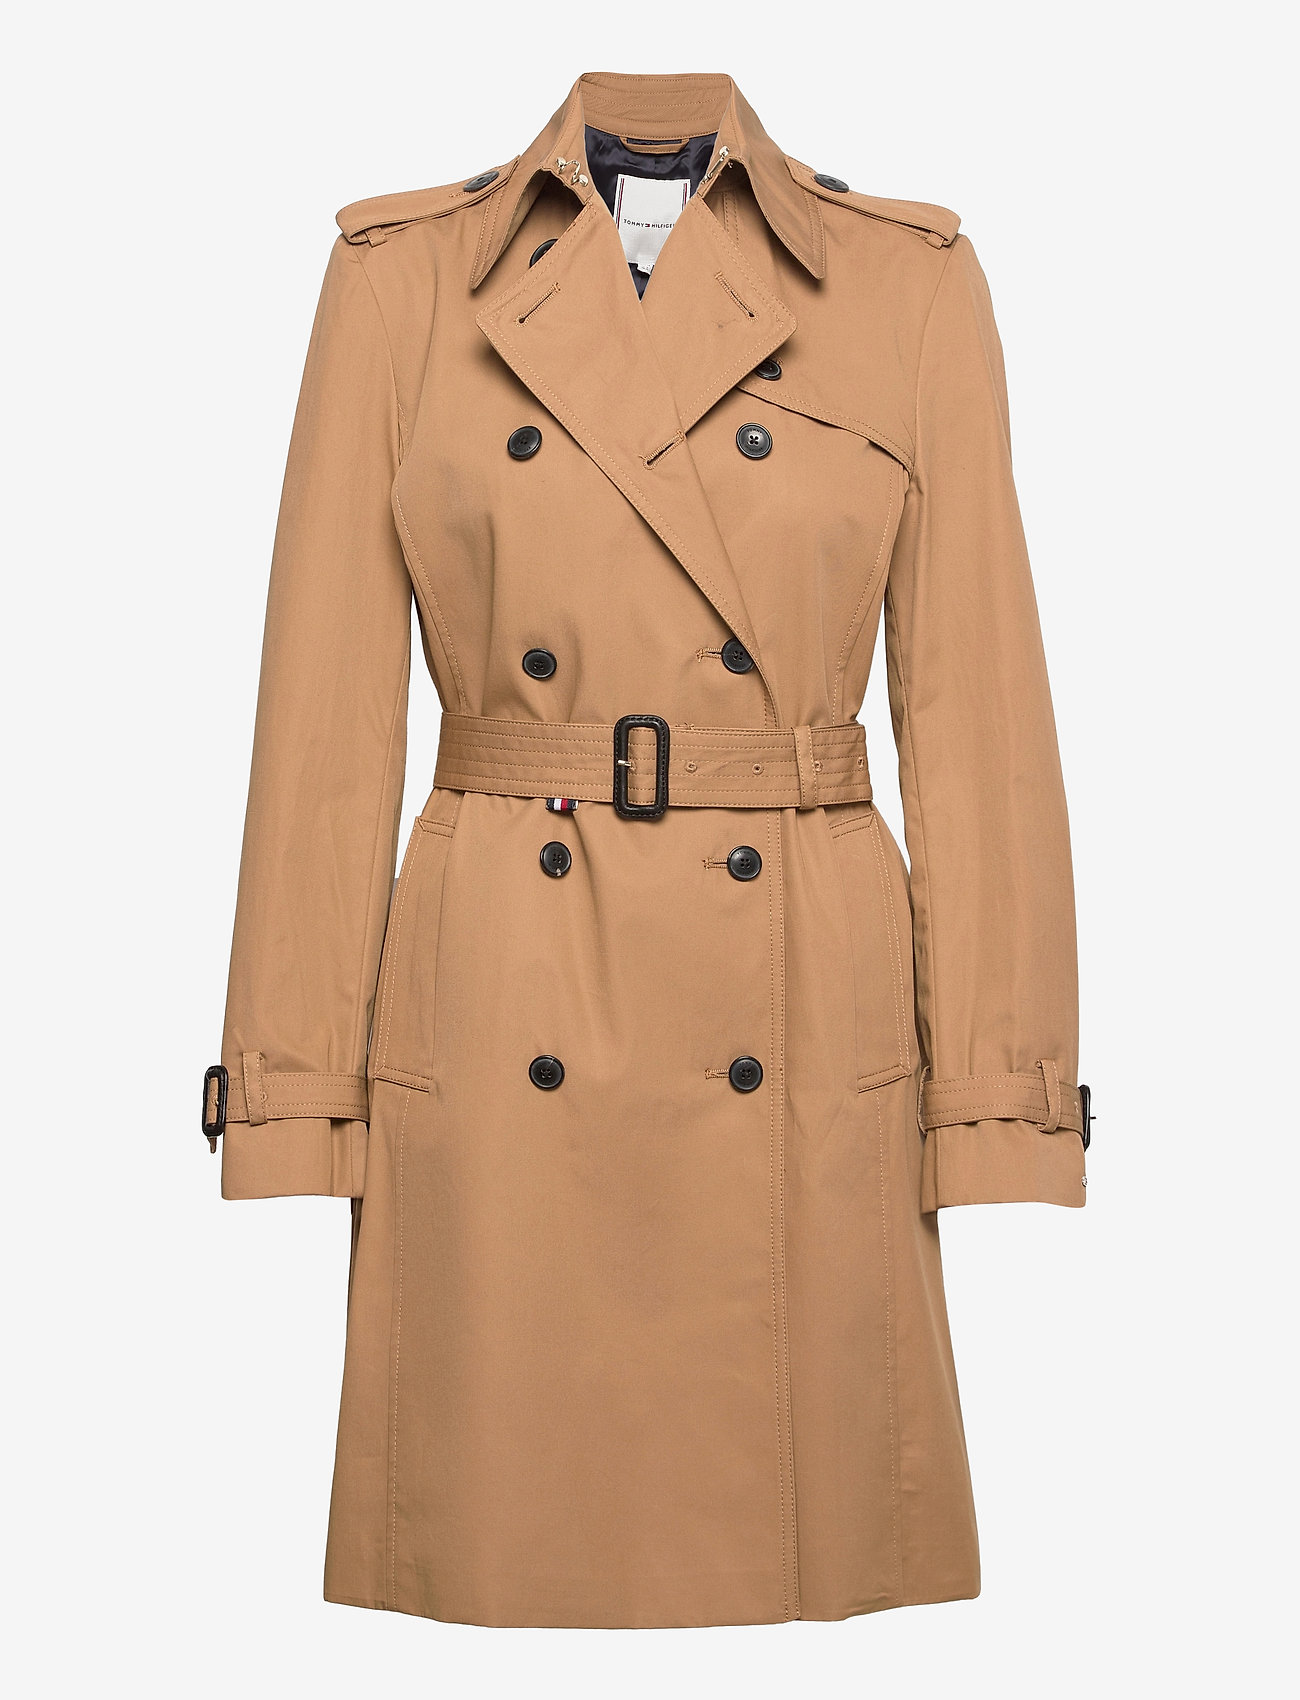 Tommy Hilfiger - COTTON BLEND DB TRENCH - trench coats - countryside khaki - 1